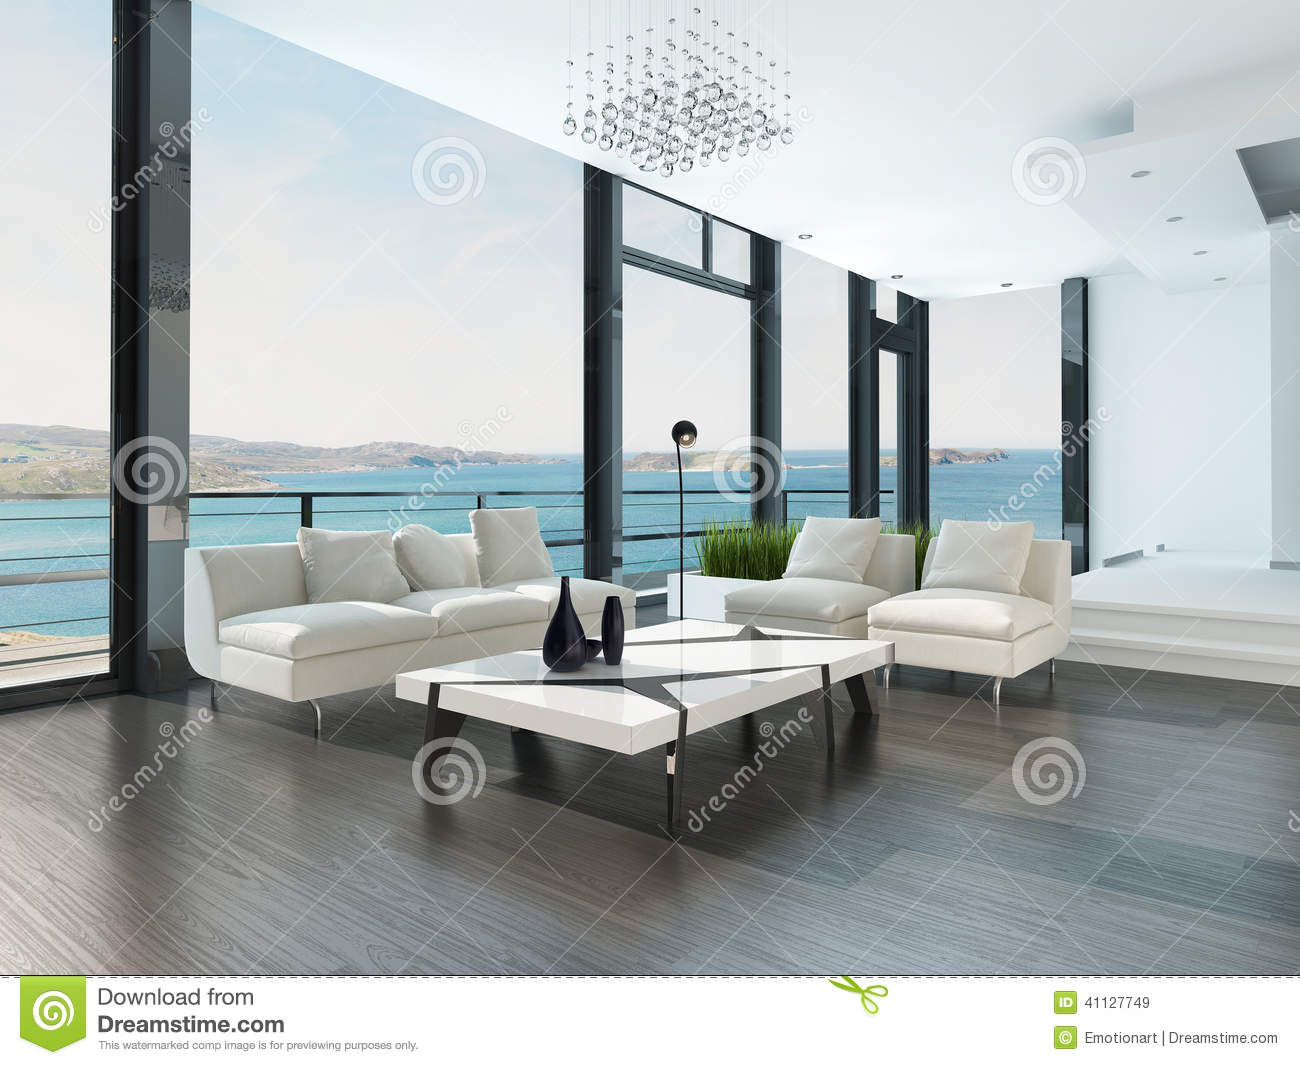 luxury modern living room luxury living room interior with white and seascape 16137